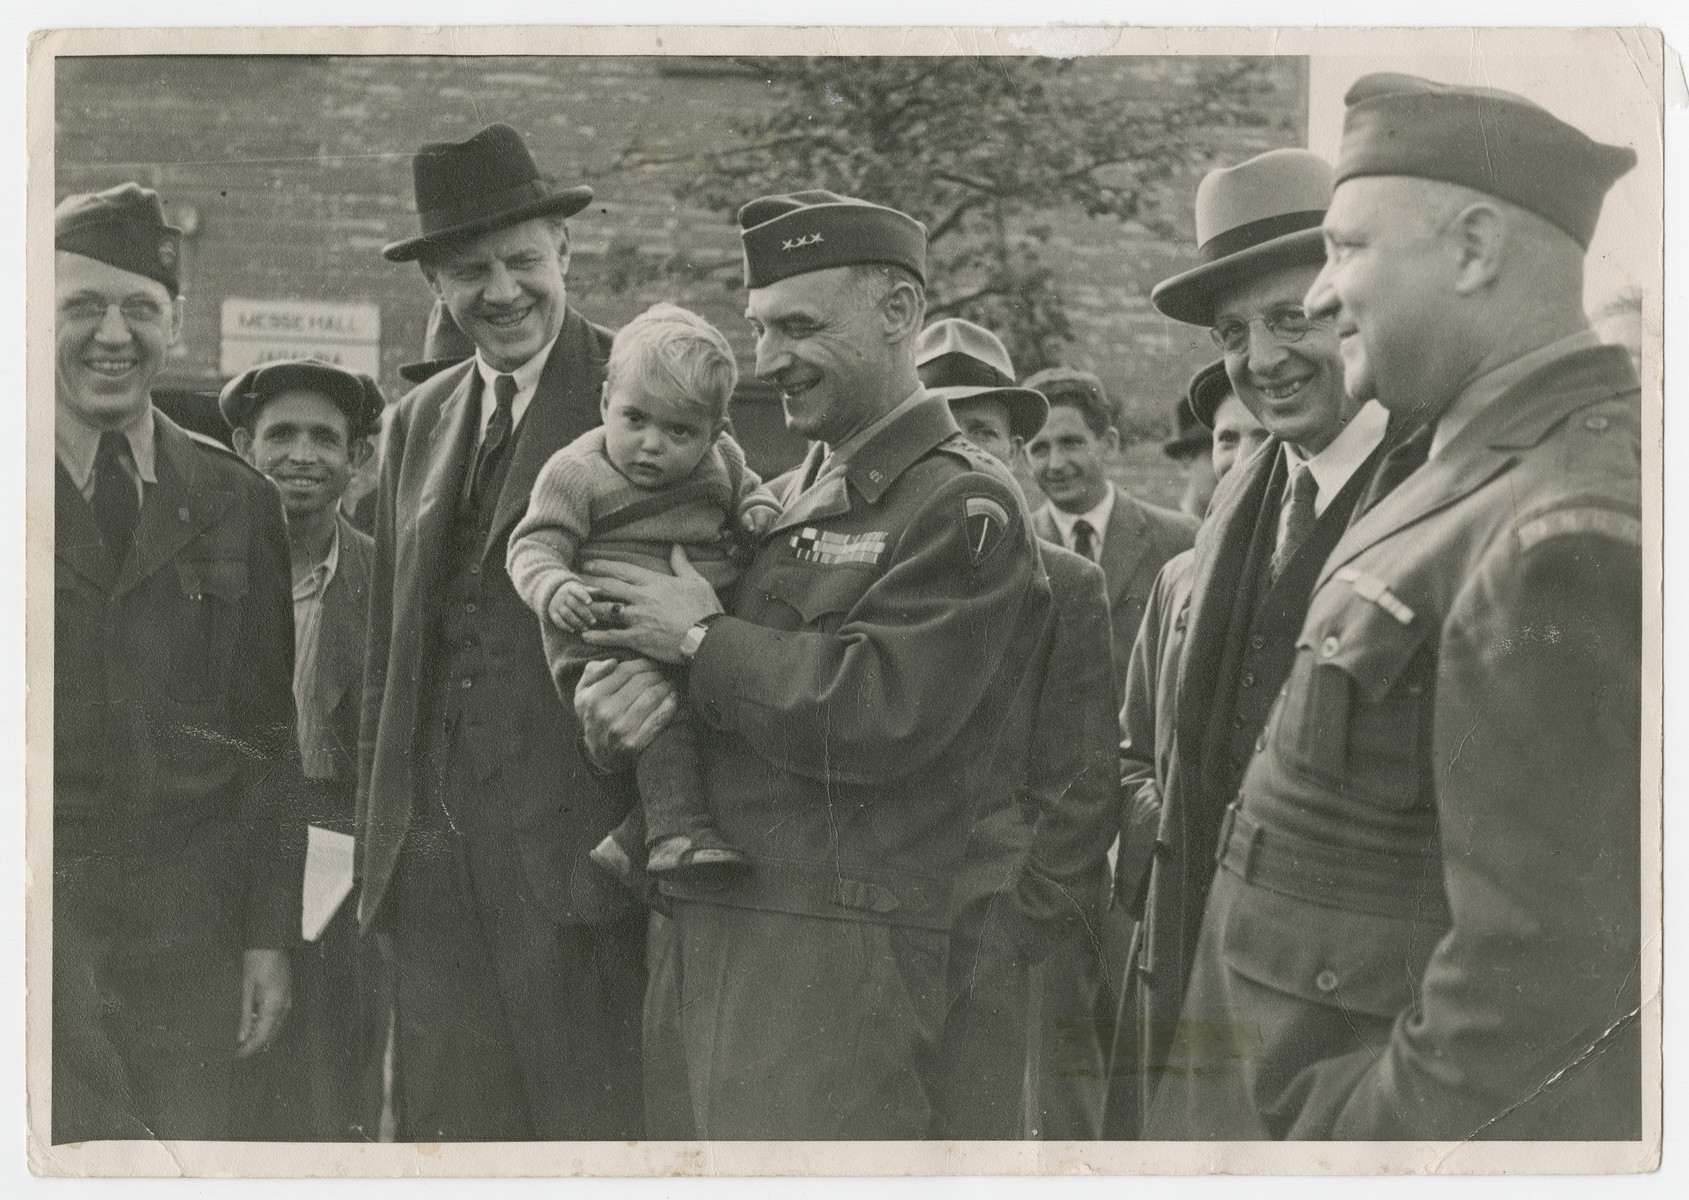 General Lucius Clay holds Gitla Fridling in his arms during a tour of the Schlachtensee displaced persons camp.  Camp director Harold Fishbein is on the far right.  Mr. Murphy from the State Dept. is probably to the left of Gen. Clay.